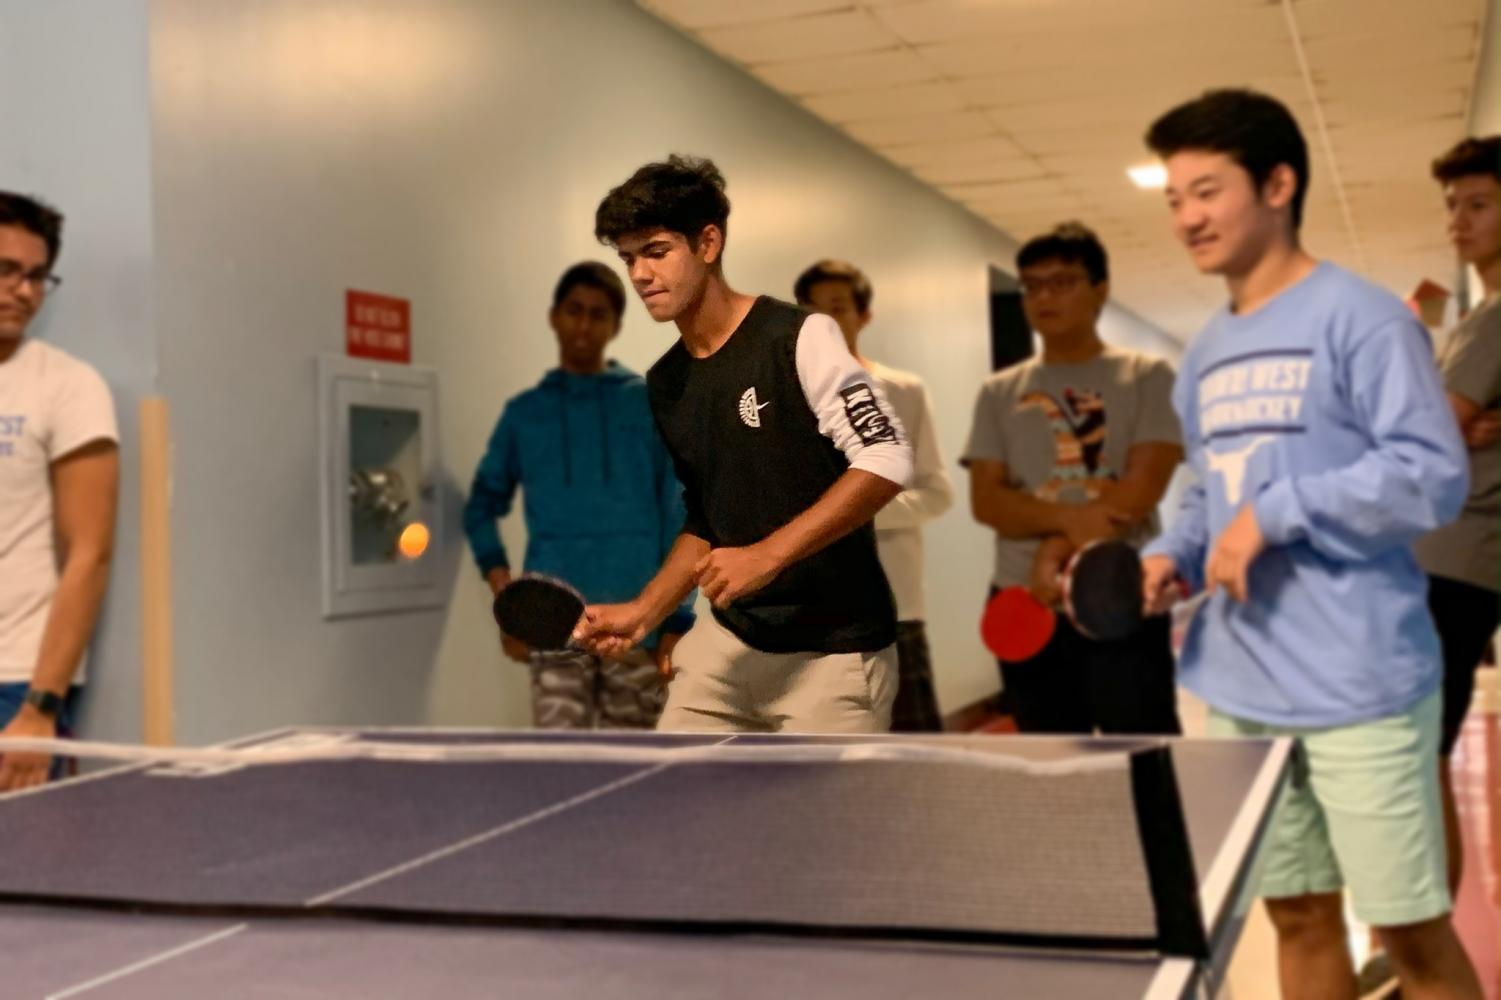 """Eyes focused on the ping pong ball, junior Ali-Raza Rizvi serves to his opponents. Before the first official meeting of Table Tennis Club, Rizvi met up with club co-founder and junior Skyler Ji to play for fun. """"Ping pong is a sport of precision and accuracy; I thought this describes me perfectly,"""" Rizvi said. """"This club provides a fun environment where everyone can enjoy playing competitively and recreationally."""""""